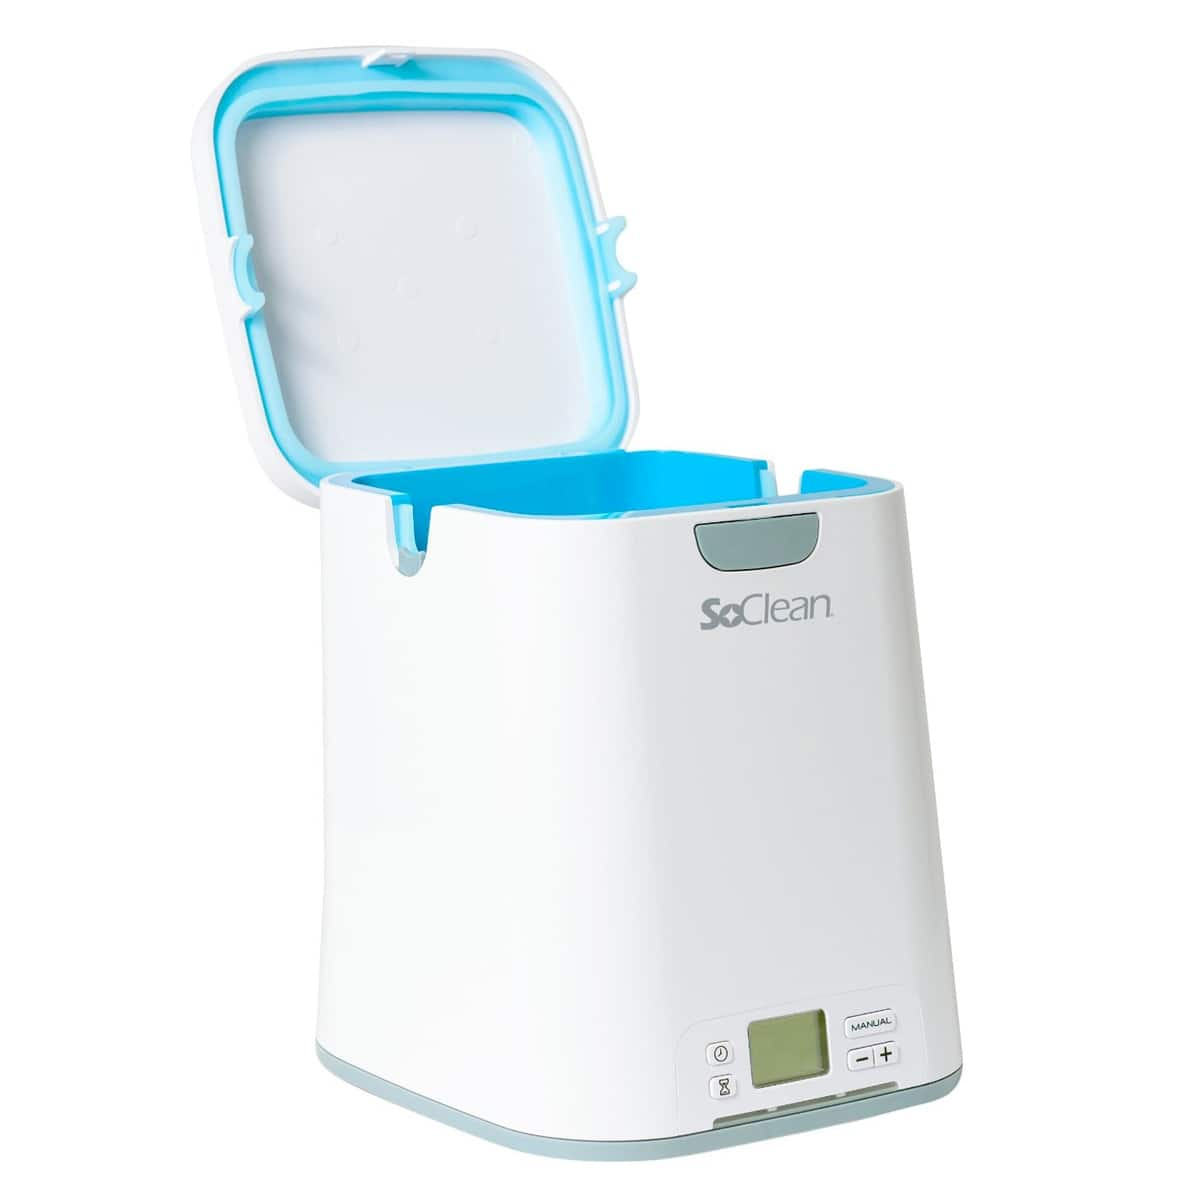 SoClean (CPAP/BiPap Cleaner And Sanitizer (with Free Adapter) $219